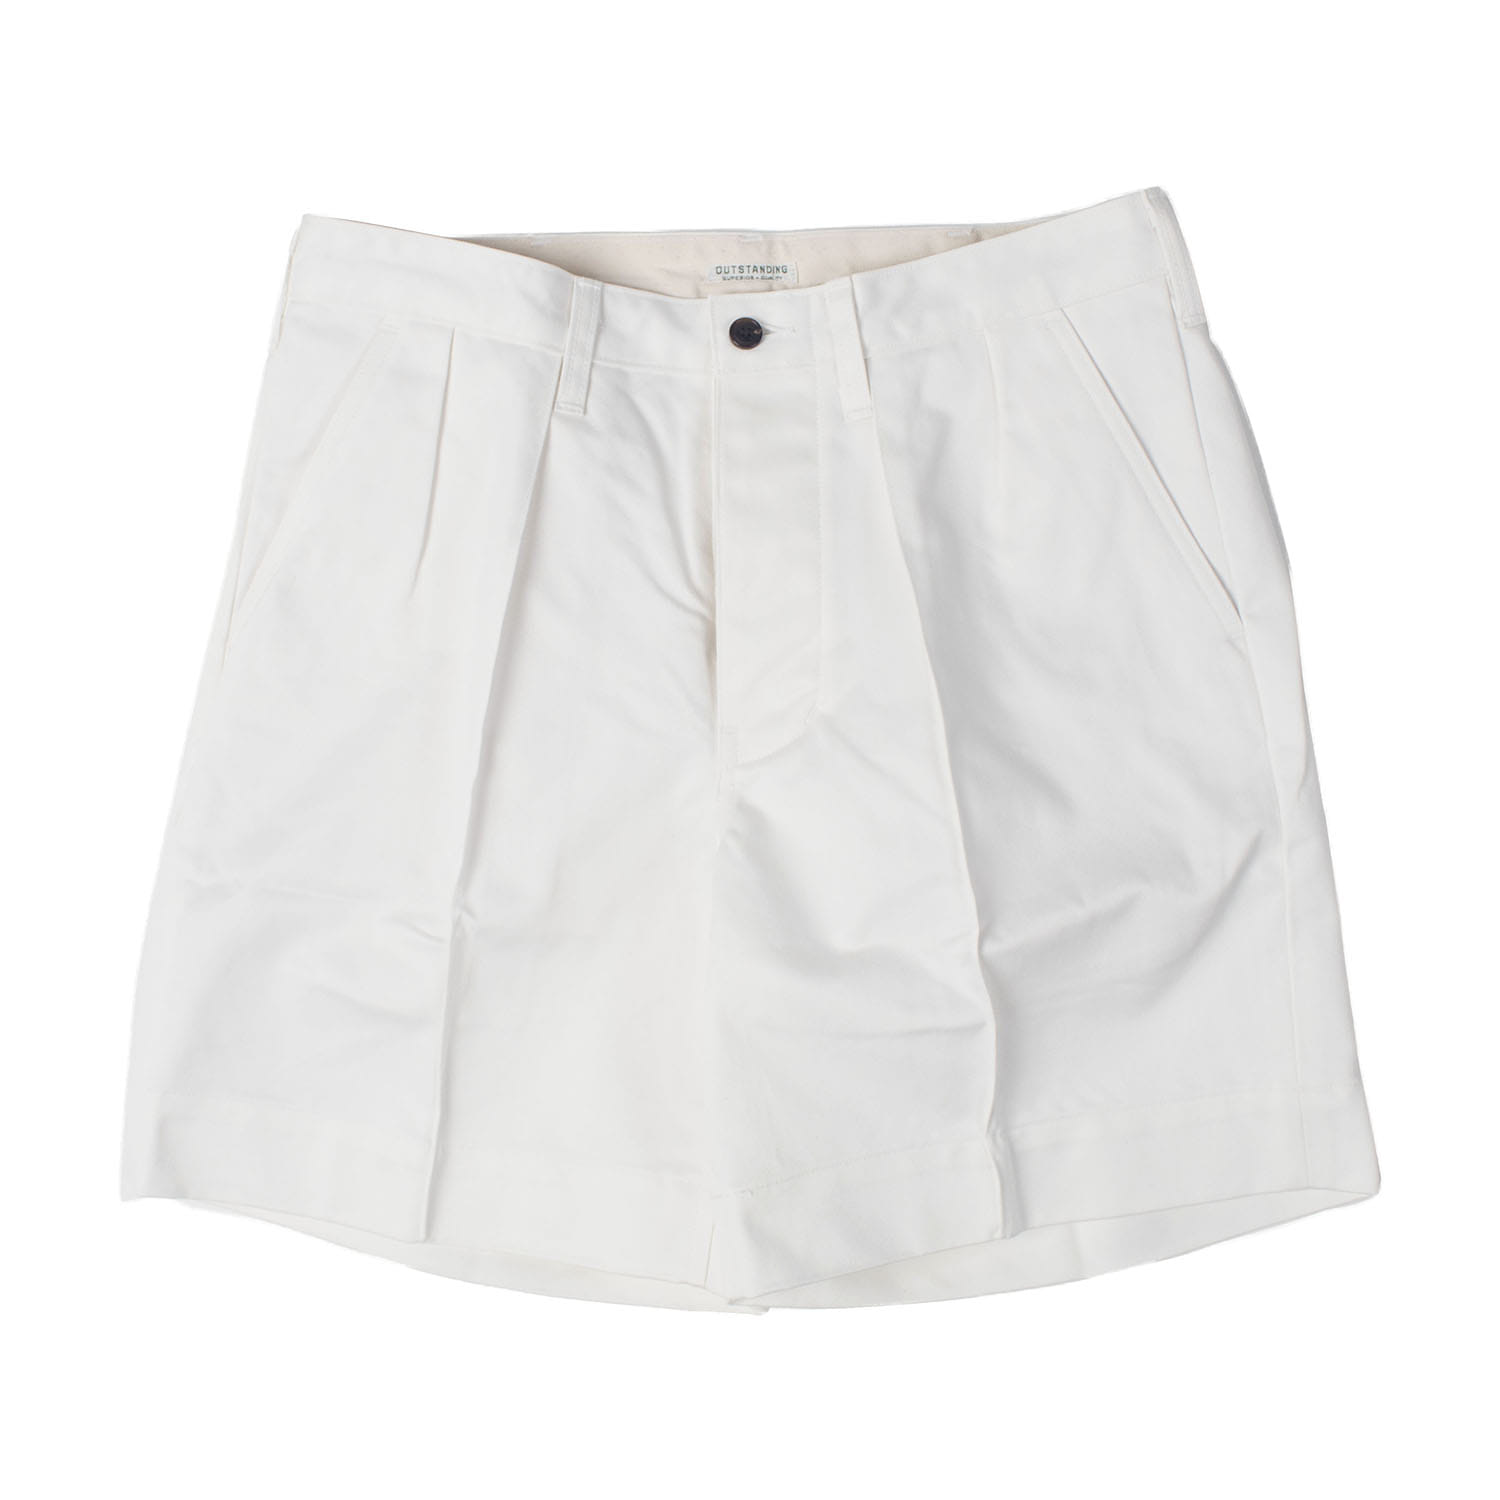 Officer Military Chino Shorts (off white)